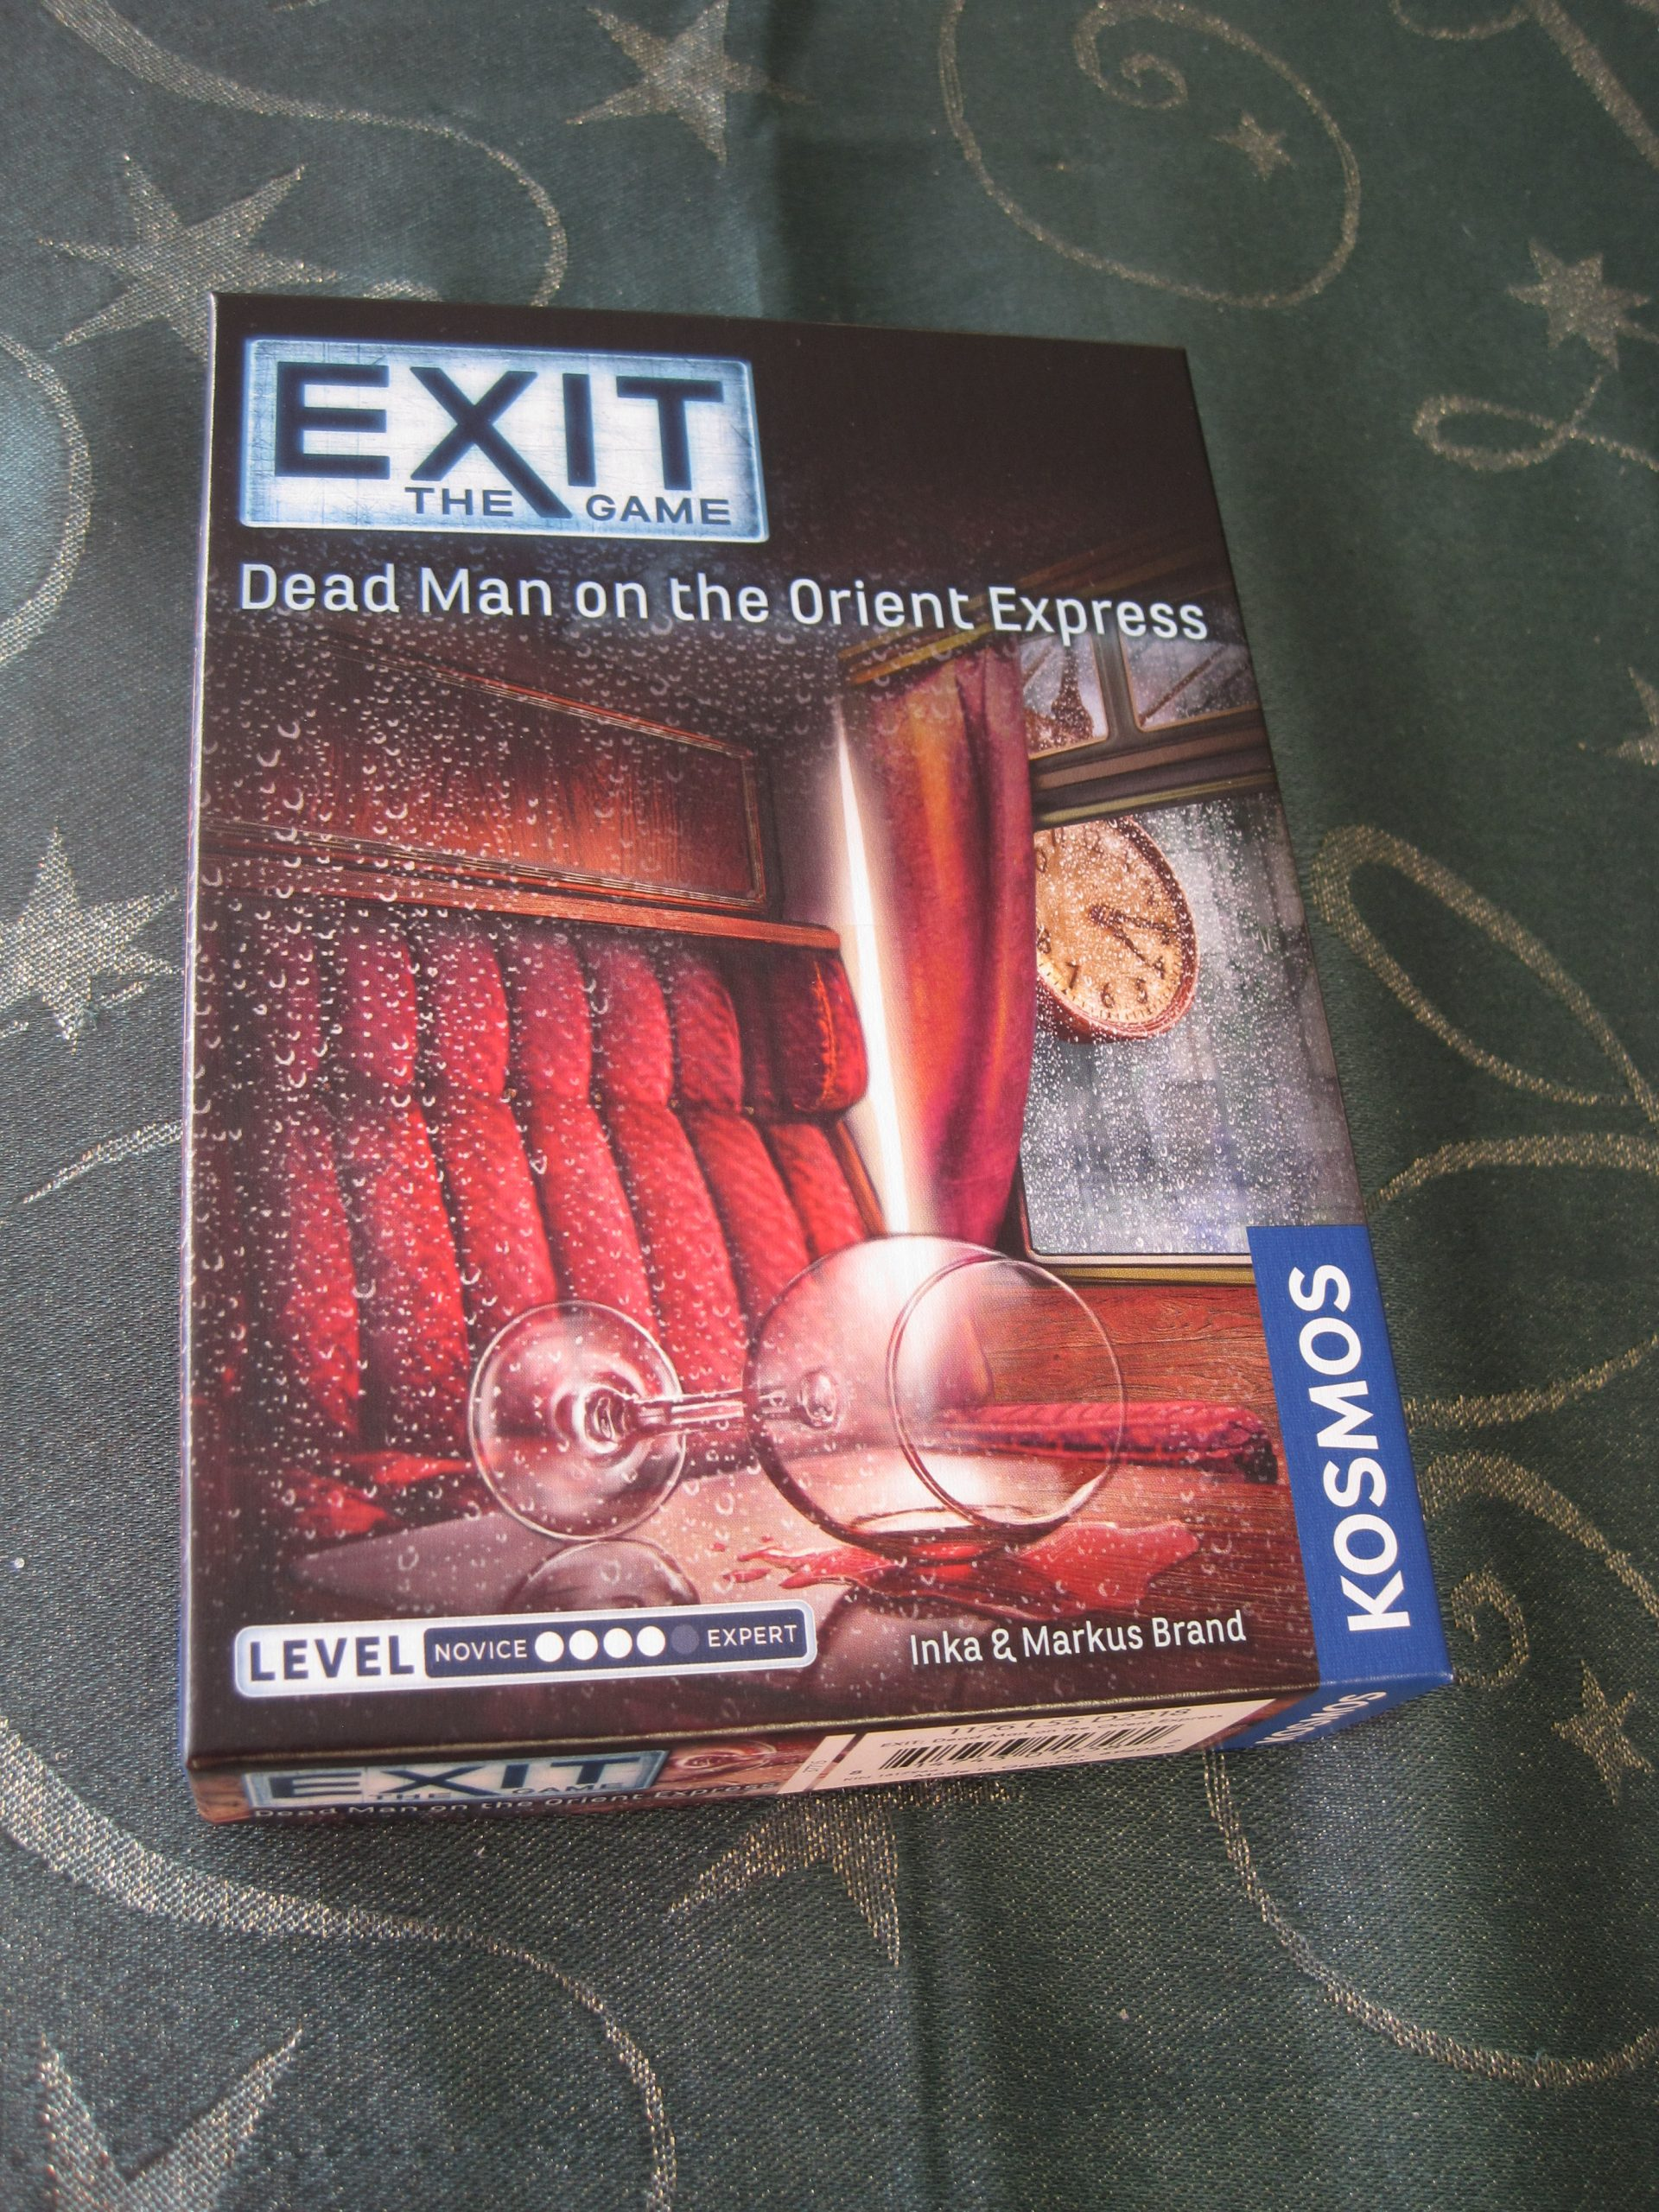 EXIT: Dead Man on the Orient Express - photo by Juliamaud